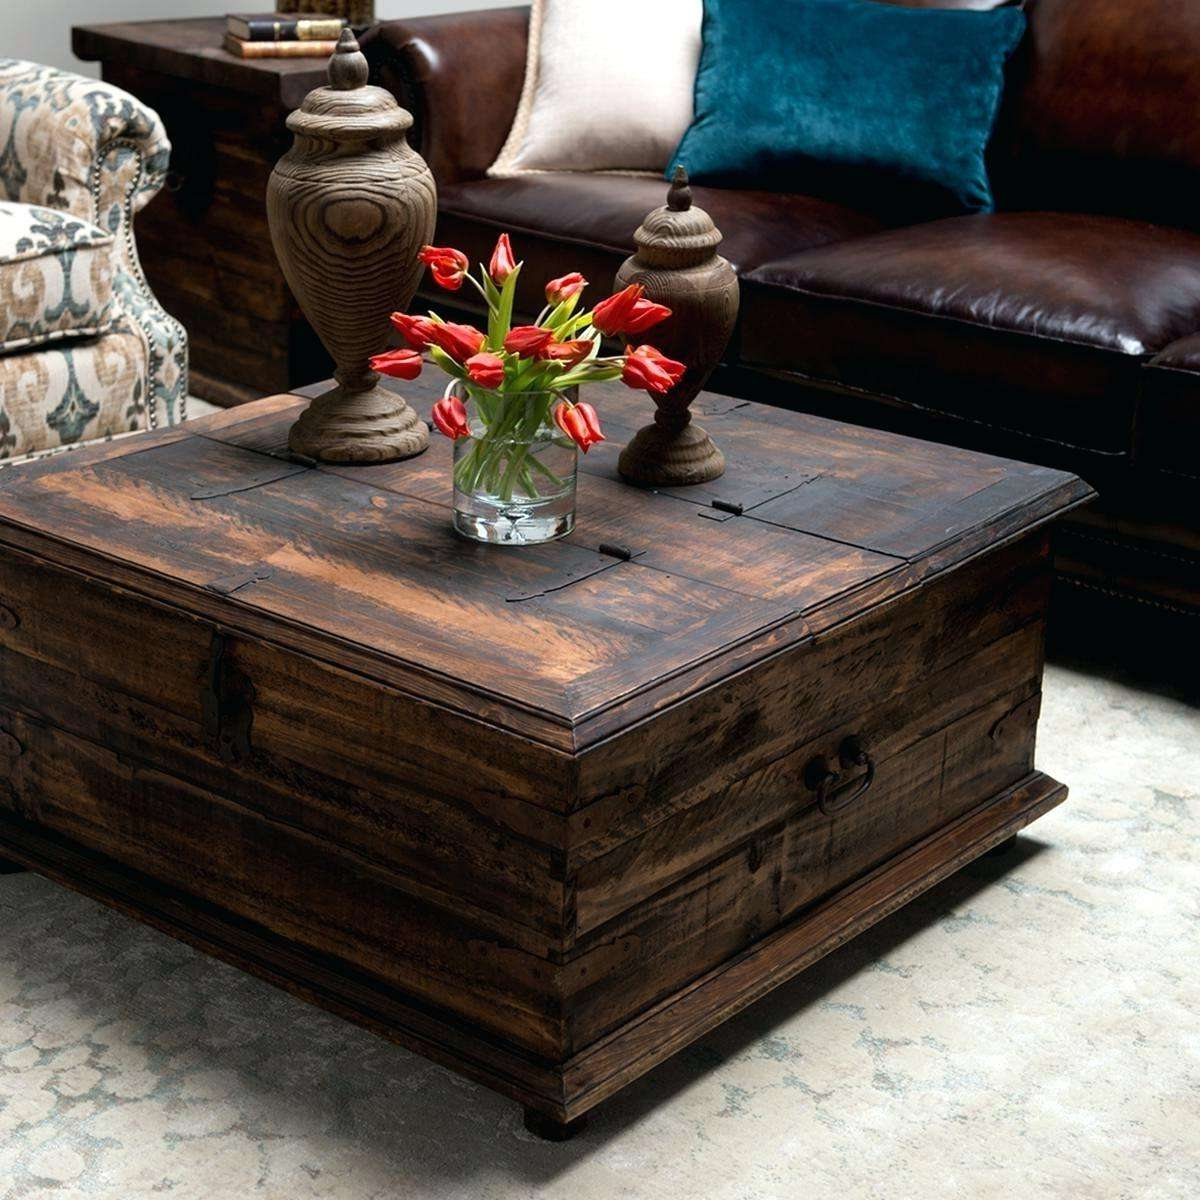 Widely Used Square Storage Coffee Tables Pertaining To Coffee Table: Square Storage Coffee Table (View 20 of 20)